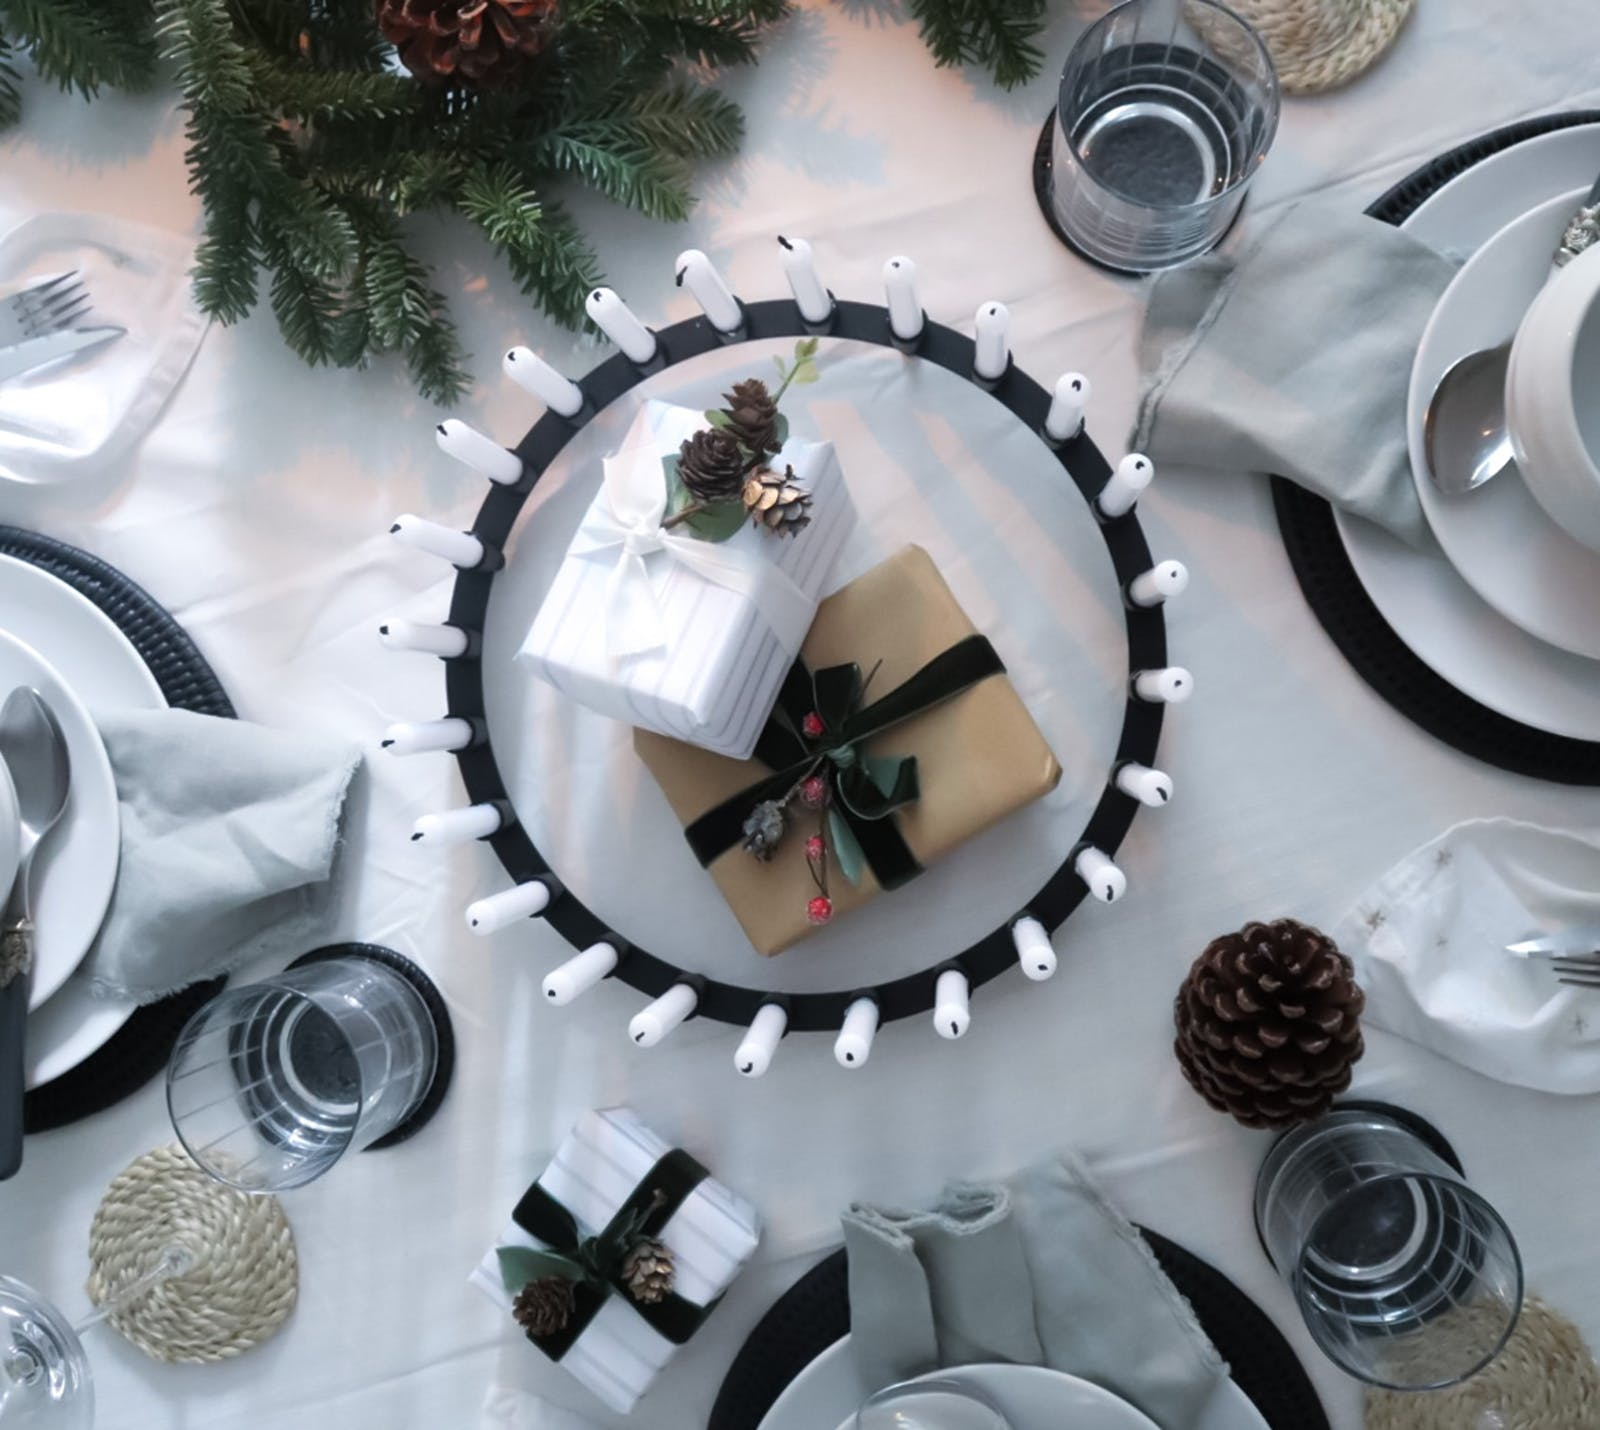 Flat lay table decoration with glasses, napkins and Christmas accents